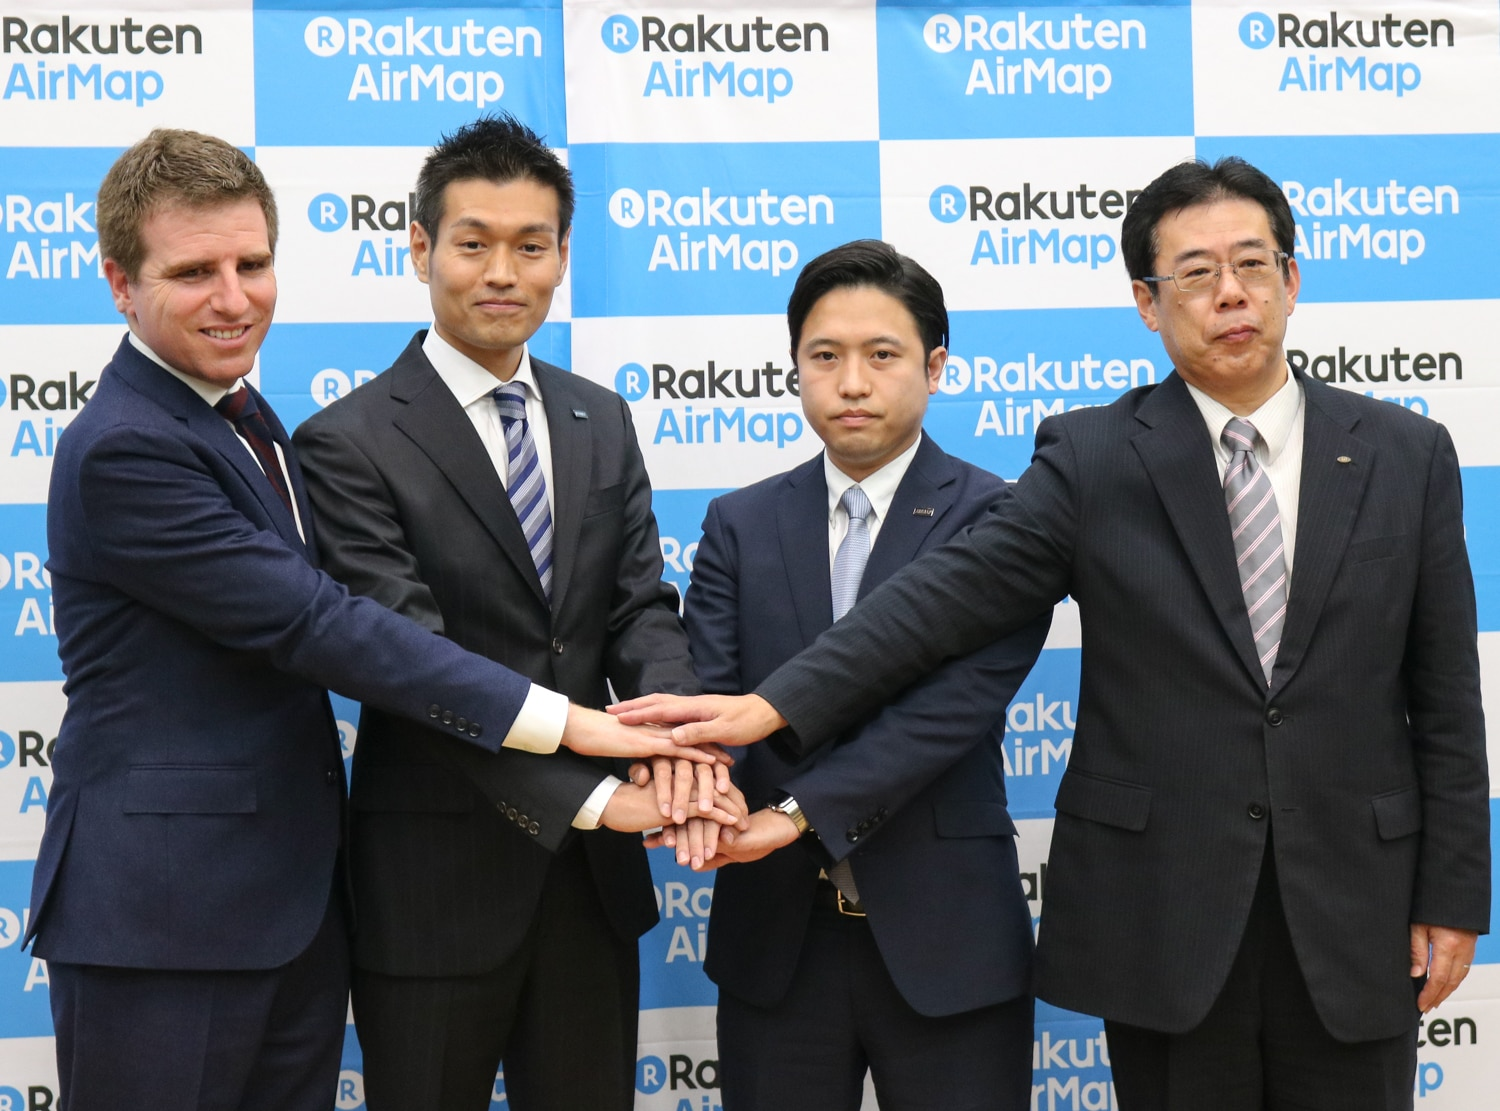 Rakuten Airmap launches drone traffic management service in Japan